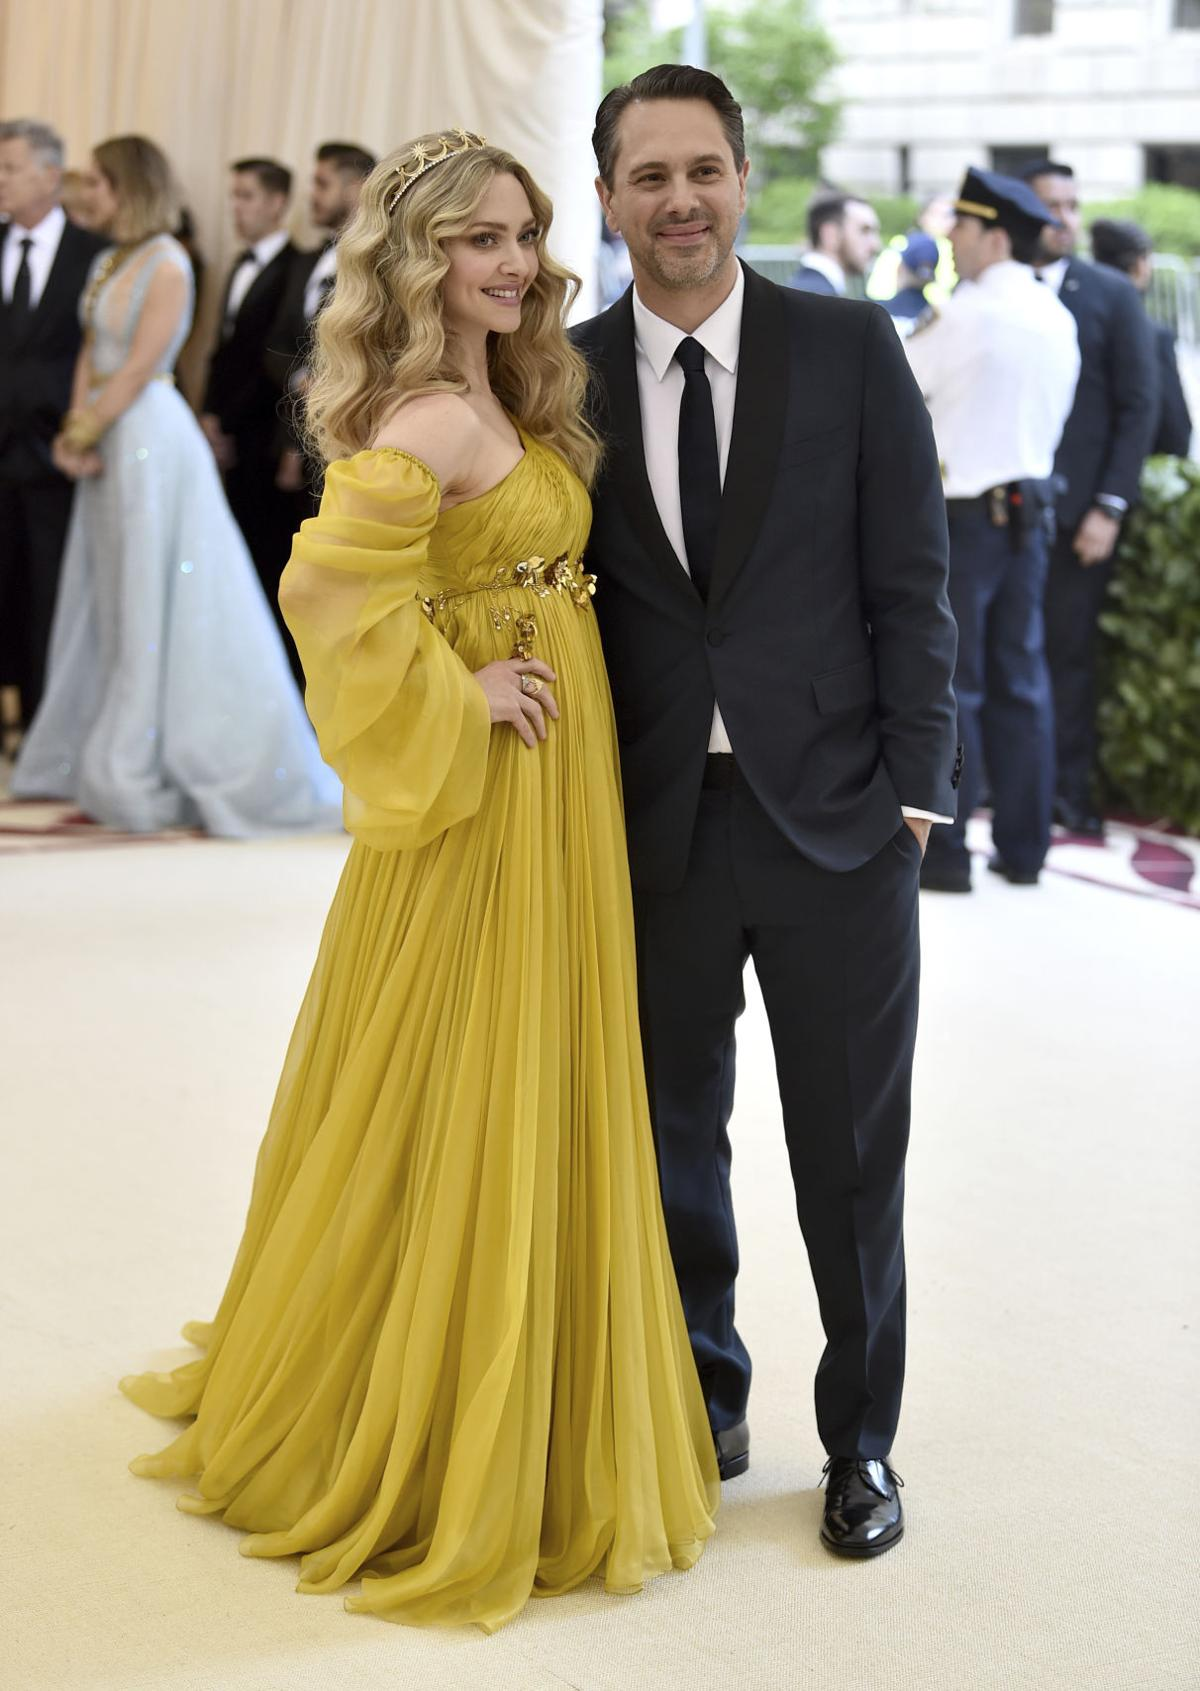 Photos: Celebrities blend fashion, some religion at 2018 Met Gala